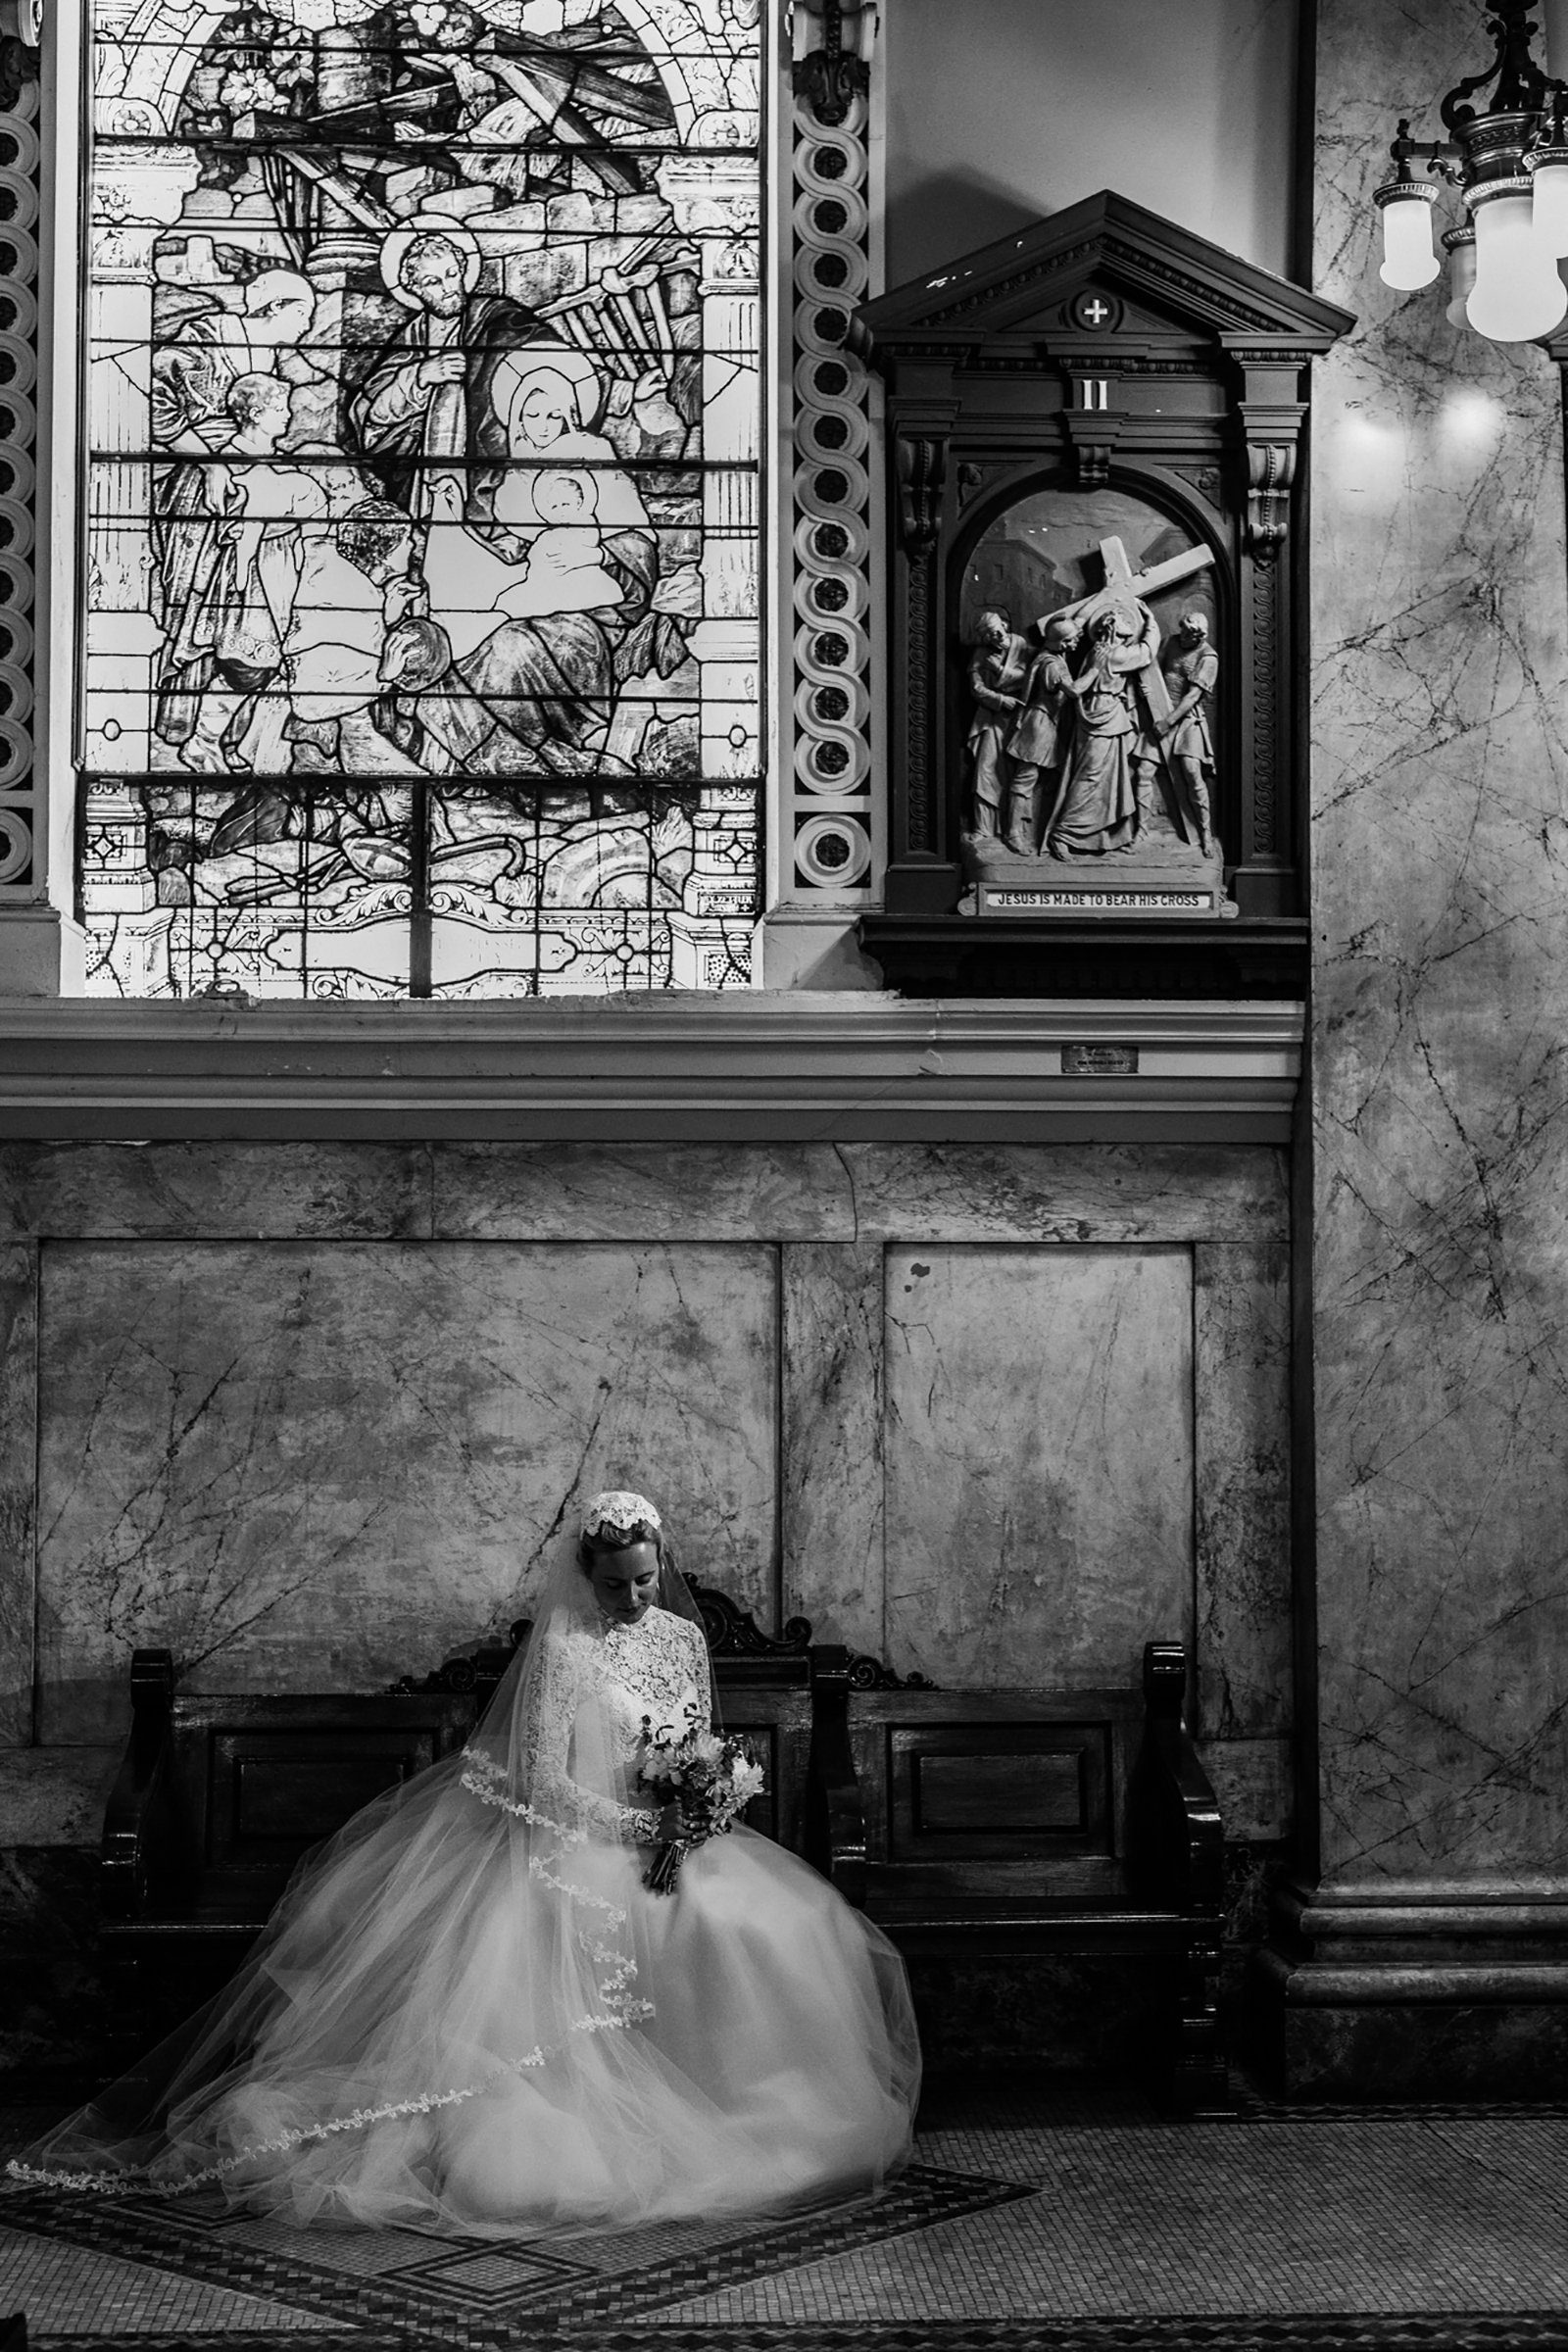 Seated bride portrait in church - photo by Kelli Wilke Photography